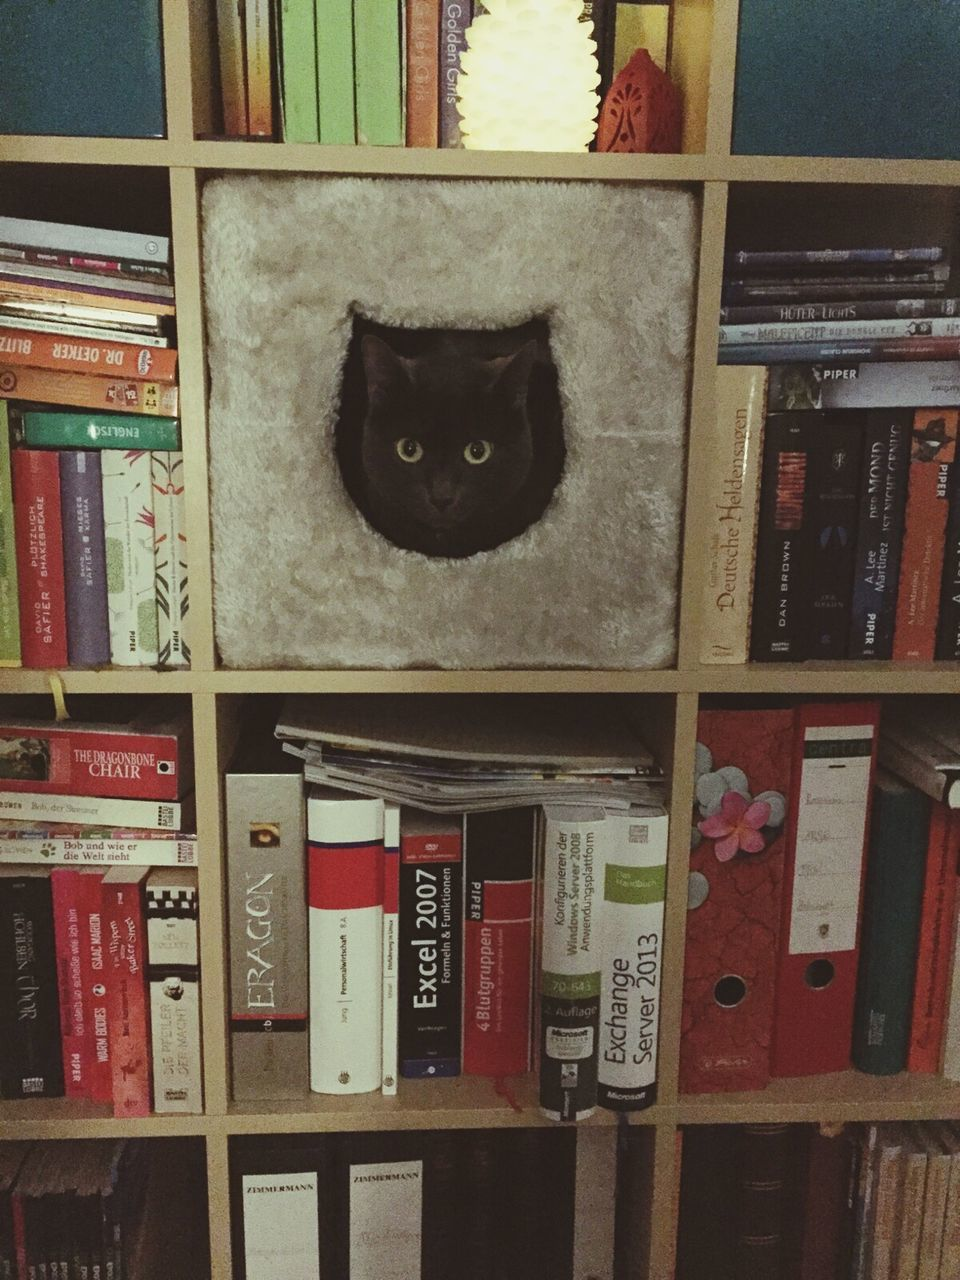 pets, indoors, domestic animals, domestic cat, cat, animal themes, window, one animal, looking at camera, portrait, black color, feline, shelf, no people, mammal, red, home interior, architecture, built structure, day